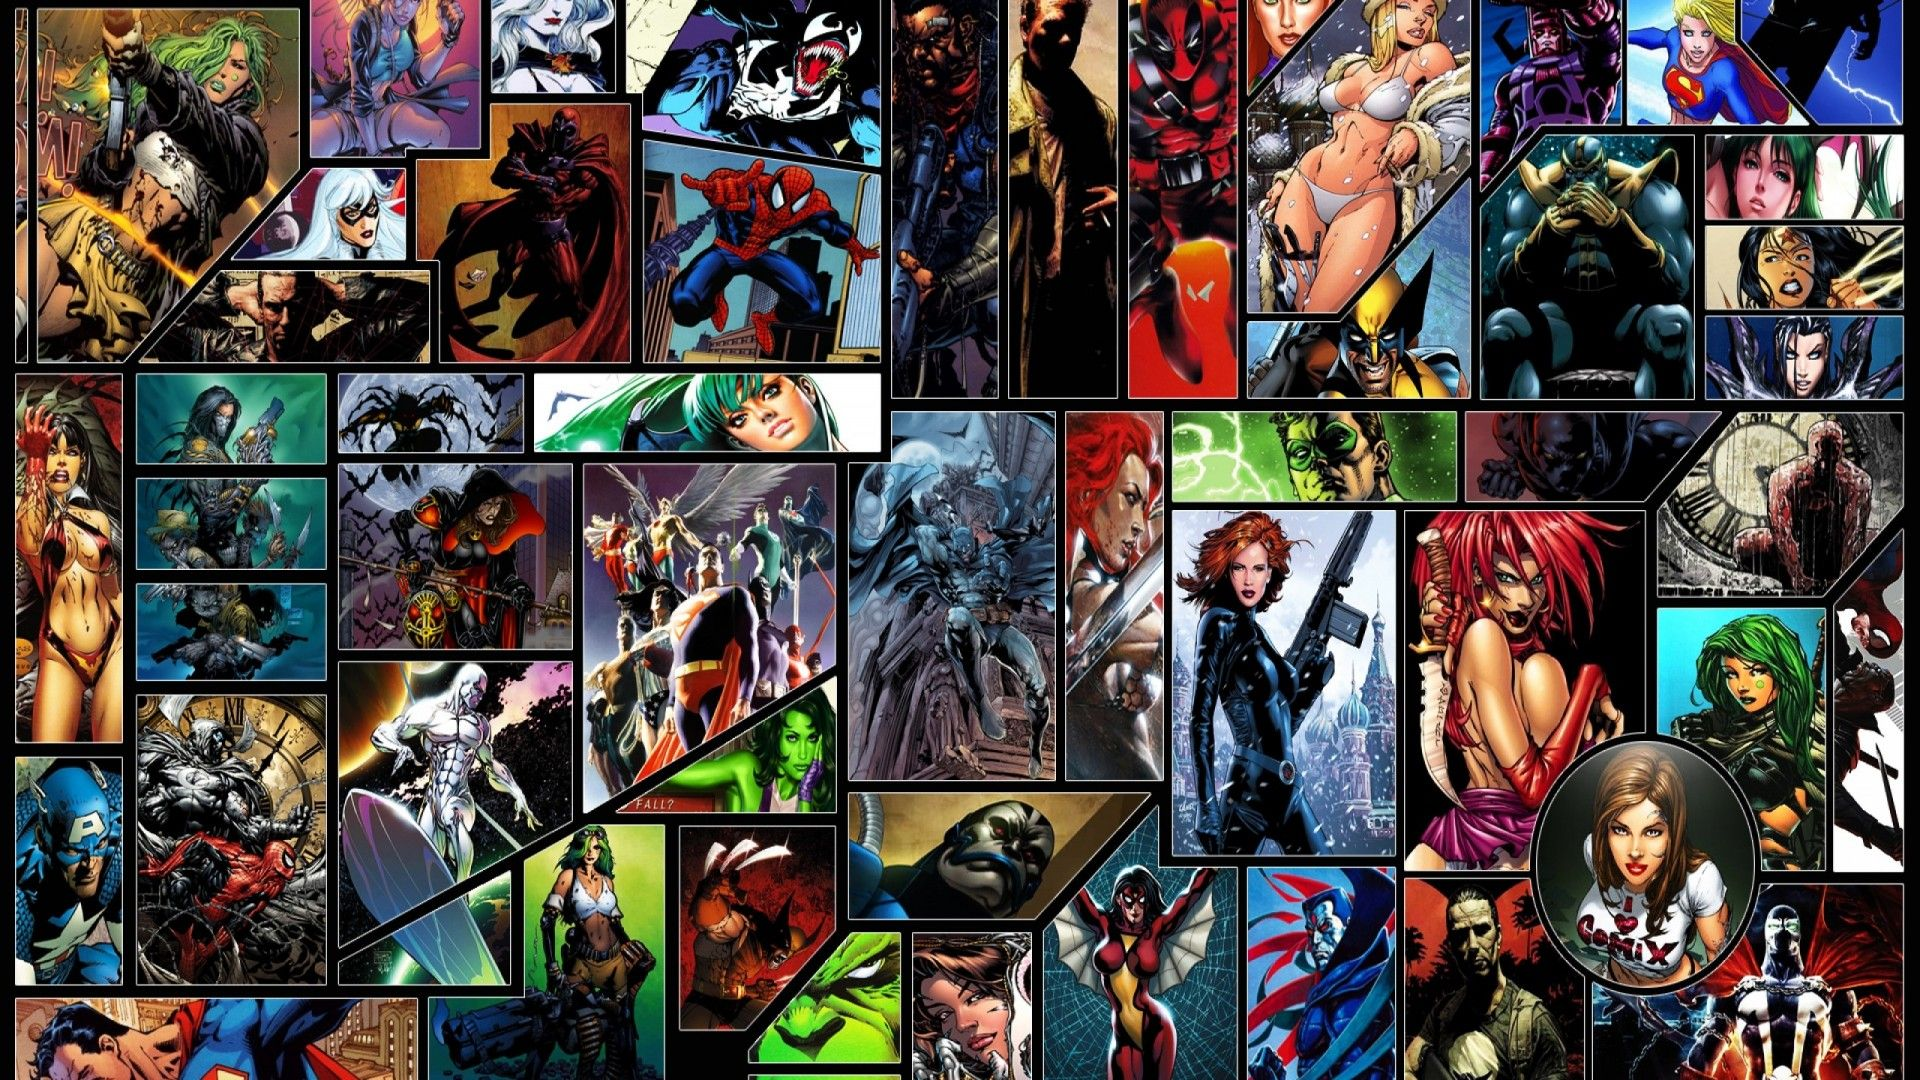 1920 X 1080 Marvel Wallpapers - Top Free 1920 X 1080 Marvel